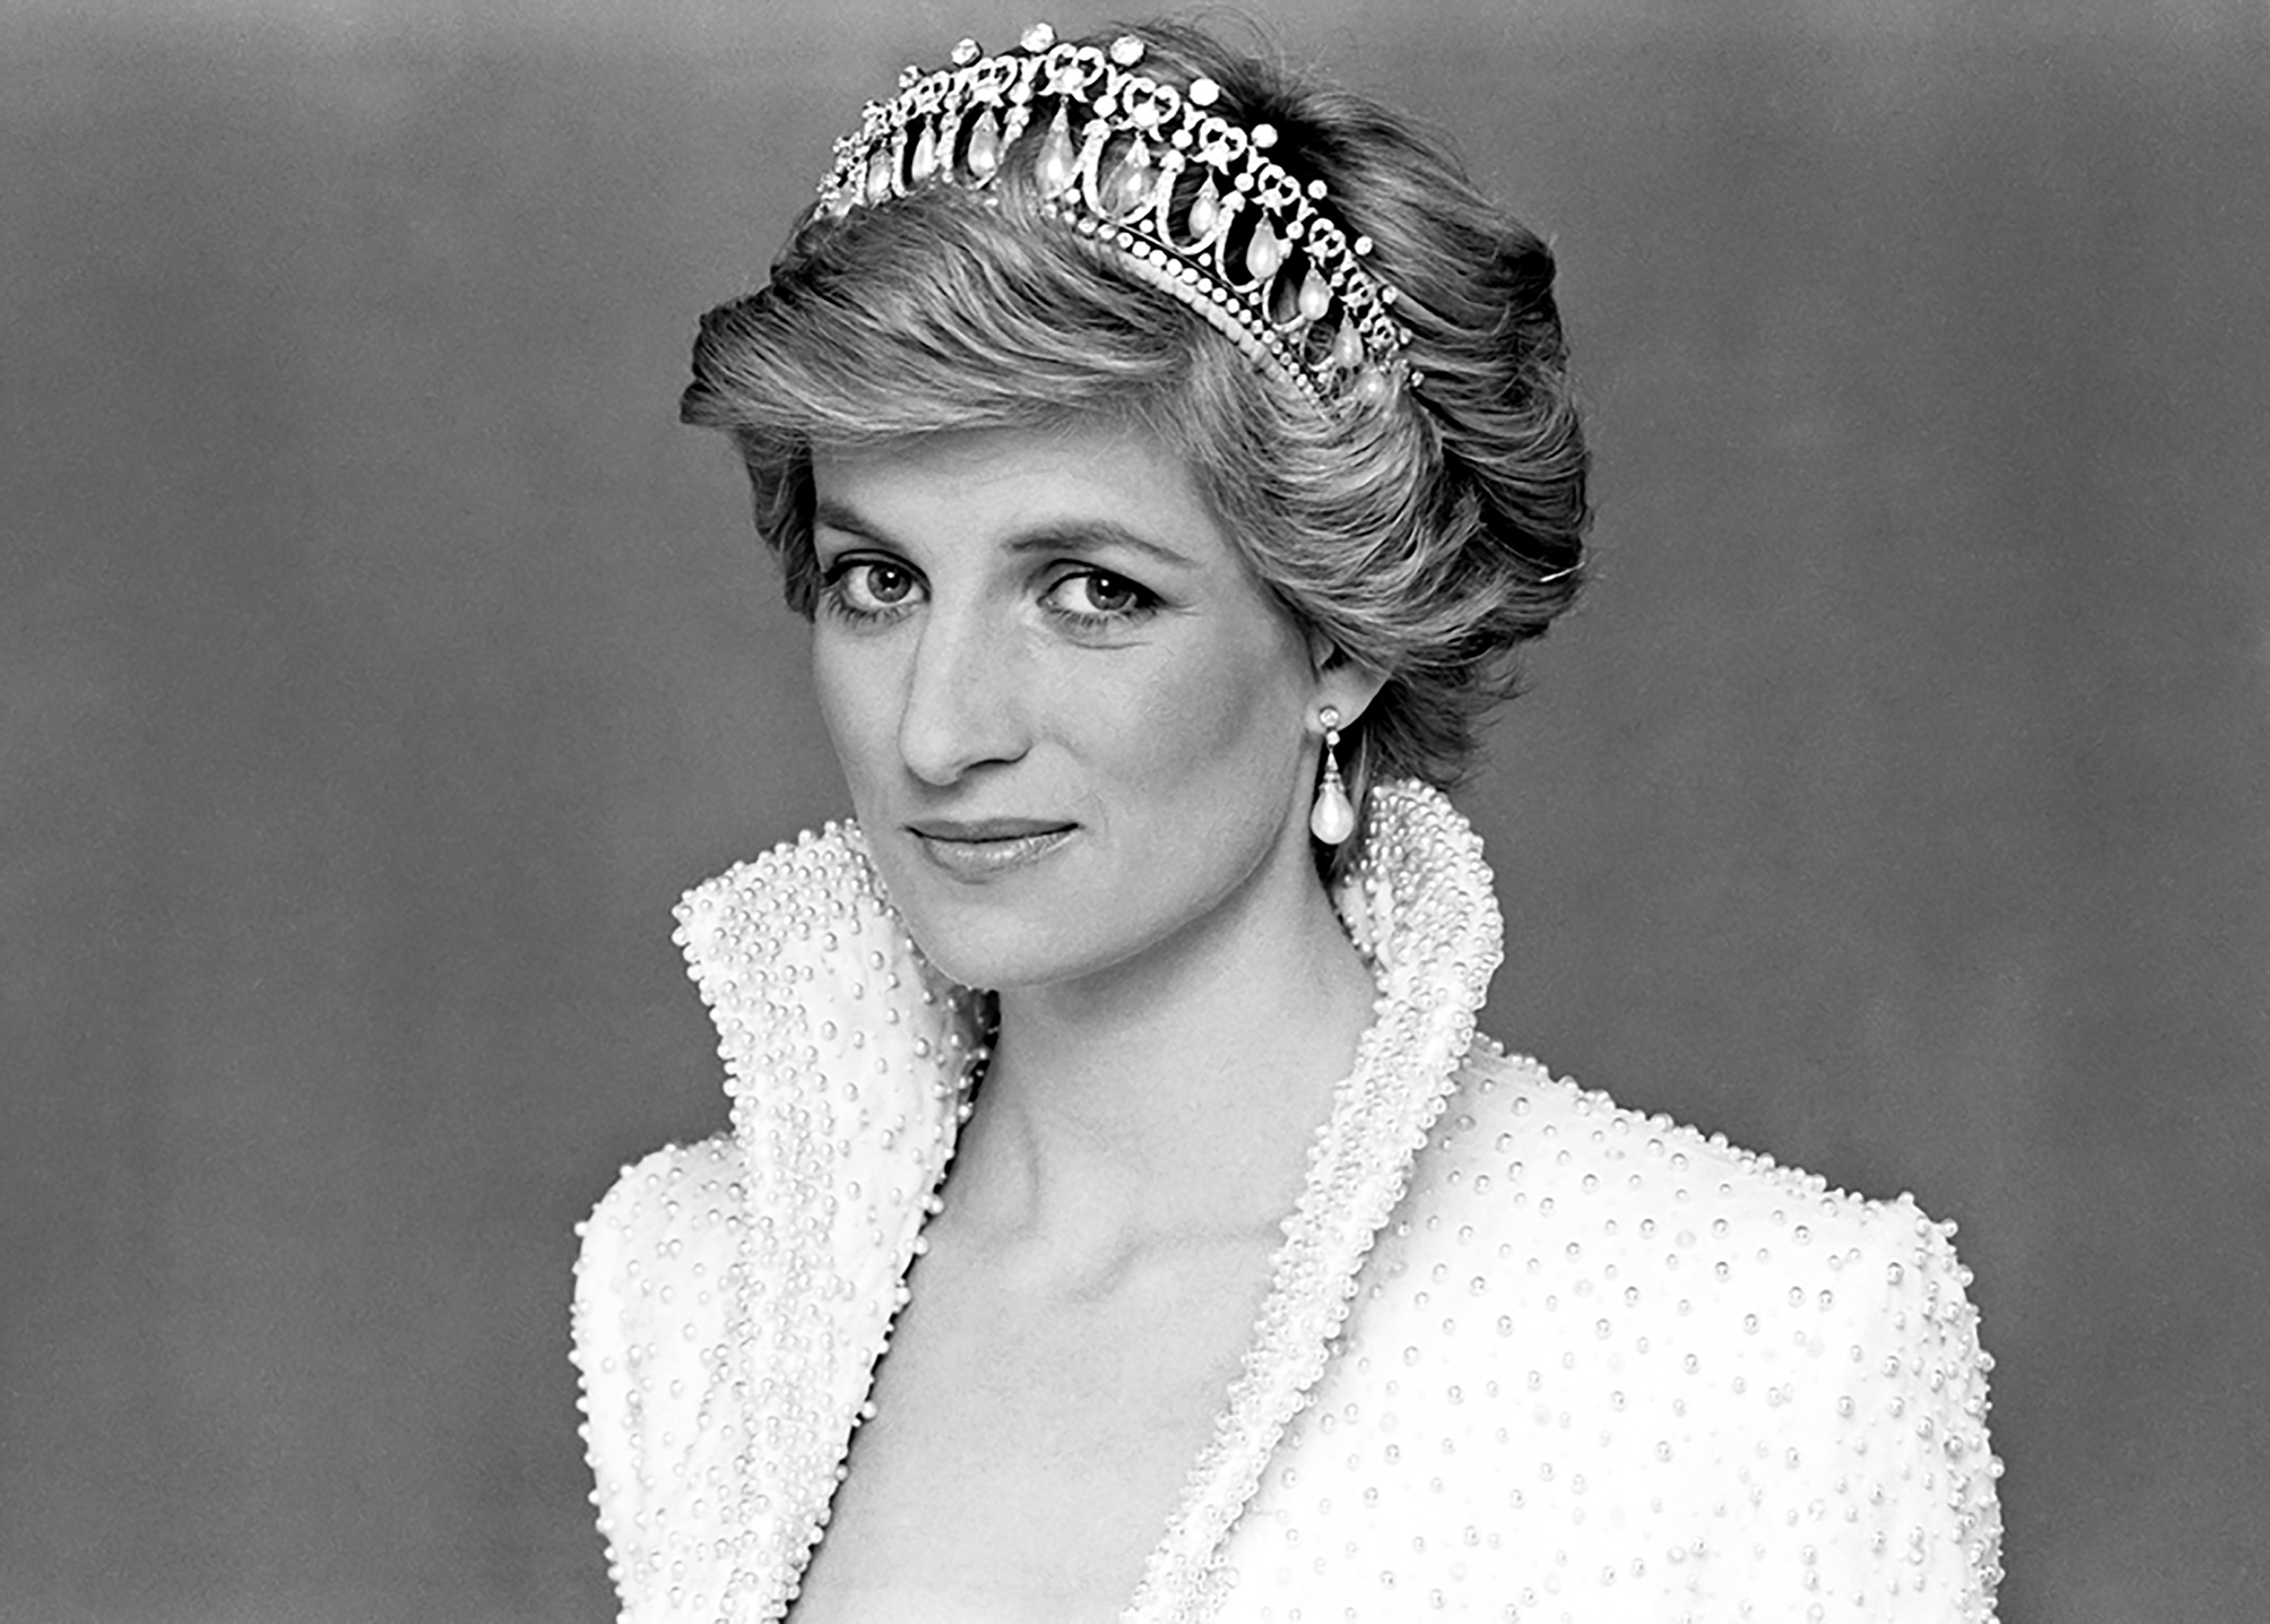 princess diana her life and legacy princess diana her life and legacy